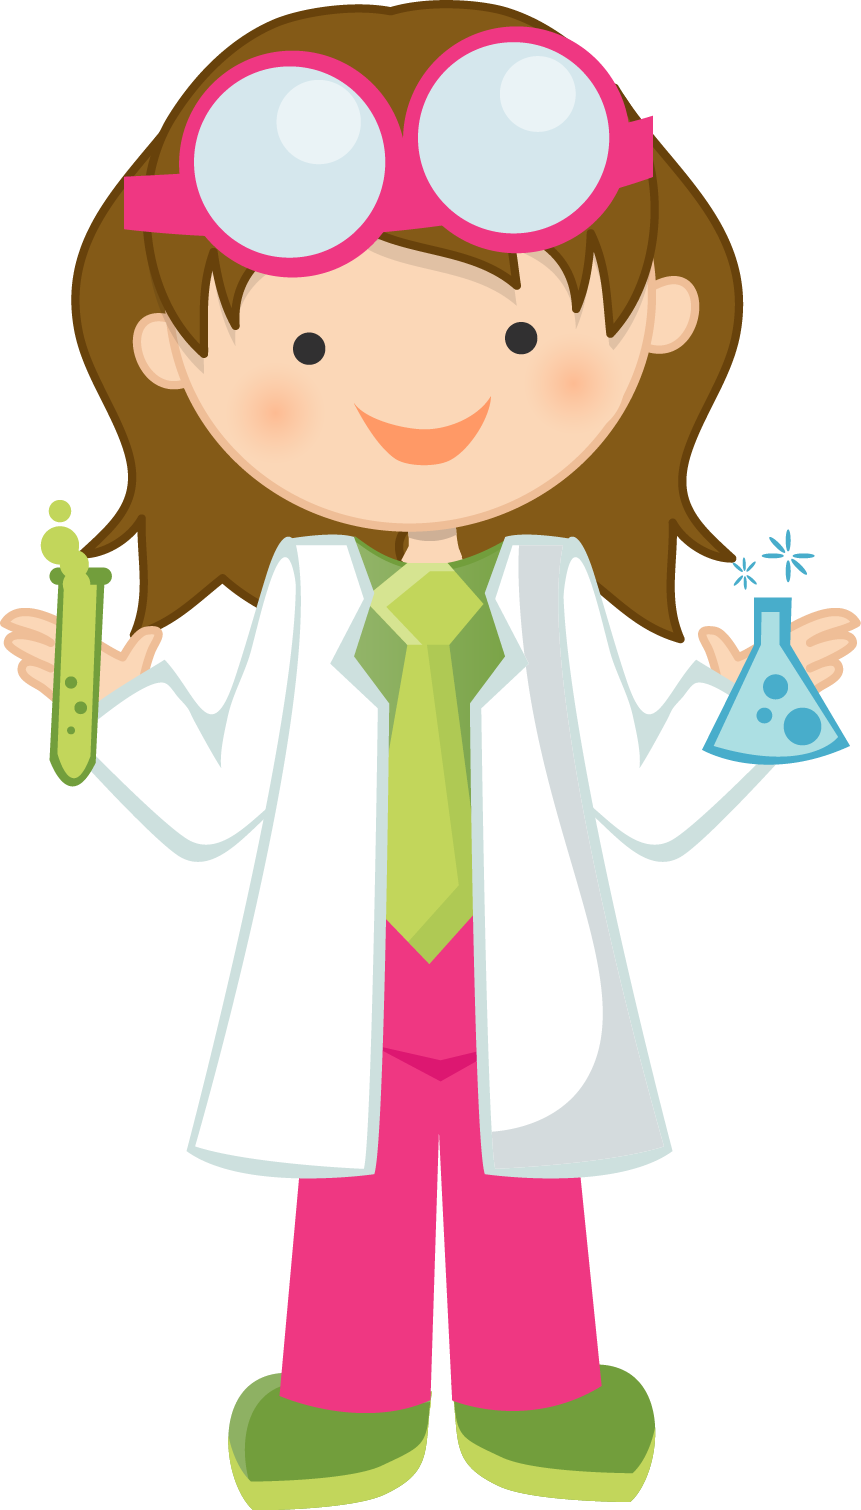 861x1510 Science Diploma Clipart, Explore Pictures